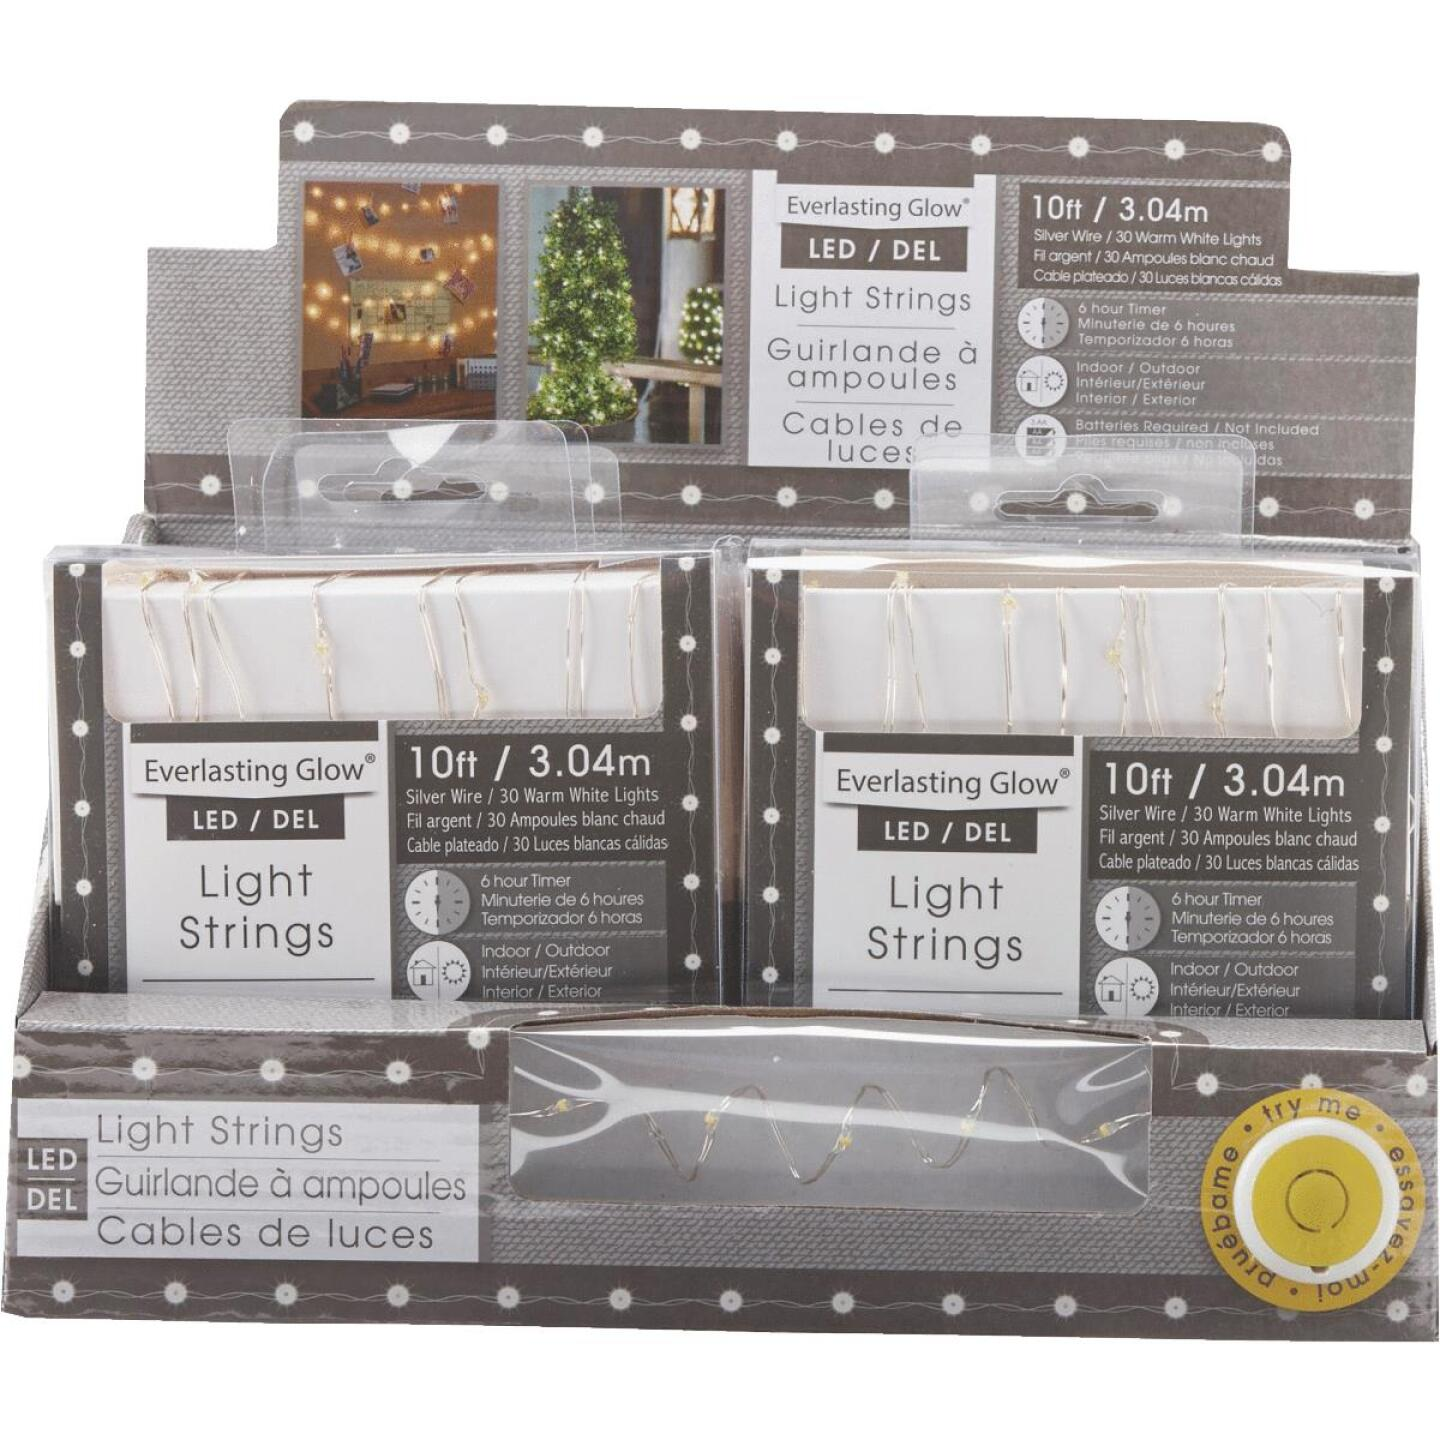 Everlasting Glow Warm White 30-Bulb Micro LED Battery Operated Light Set with Silver Wire Image 3